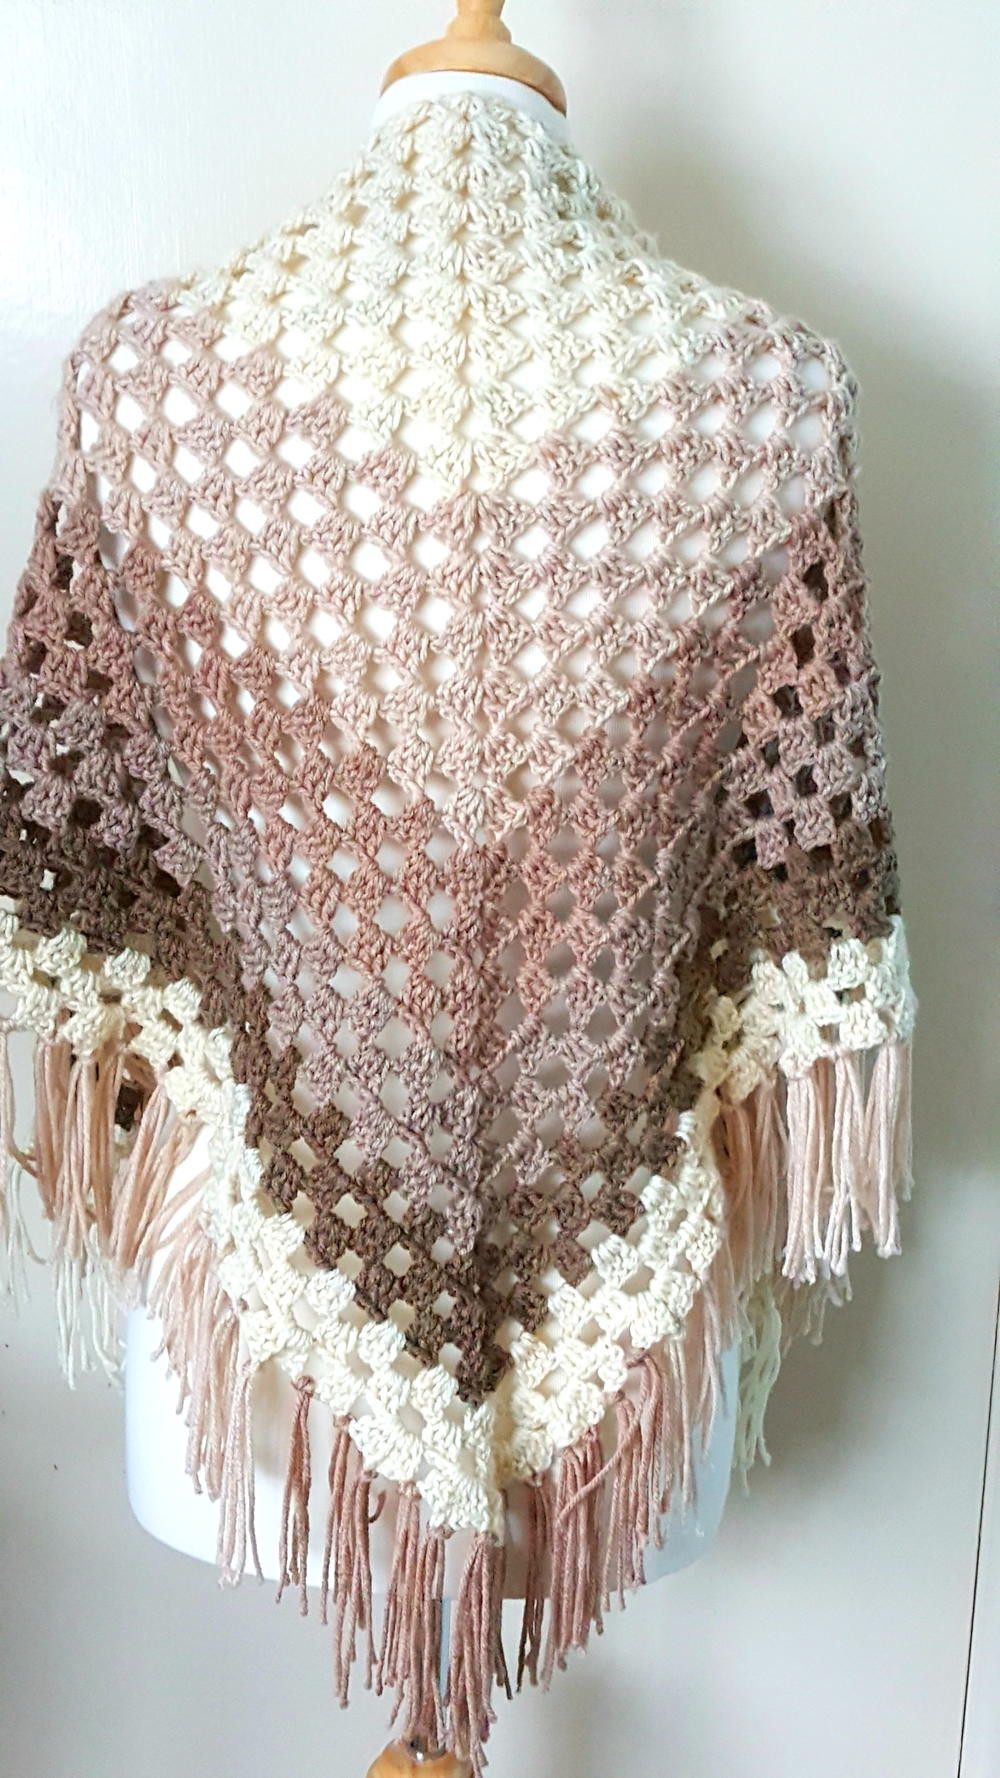 Crochet Shawl Pattern Inspirational Crochet Ombre Shawl Of Wonderful 50 Pics Crochet Shawl Pattern